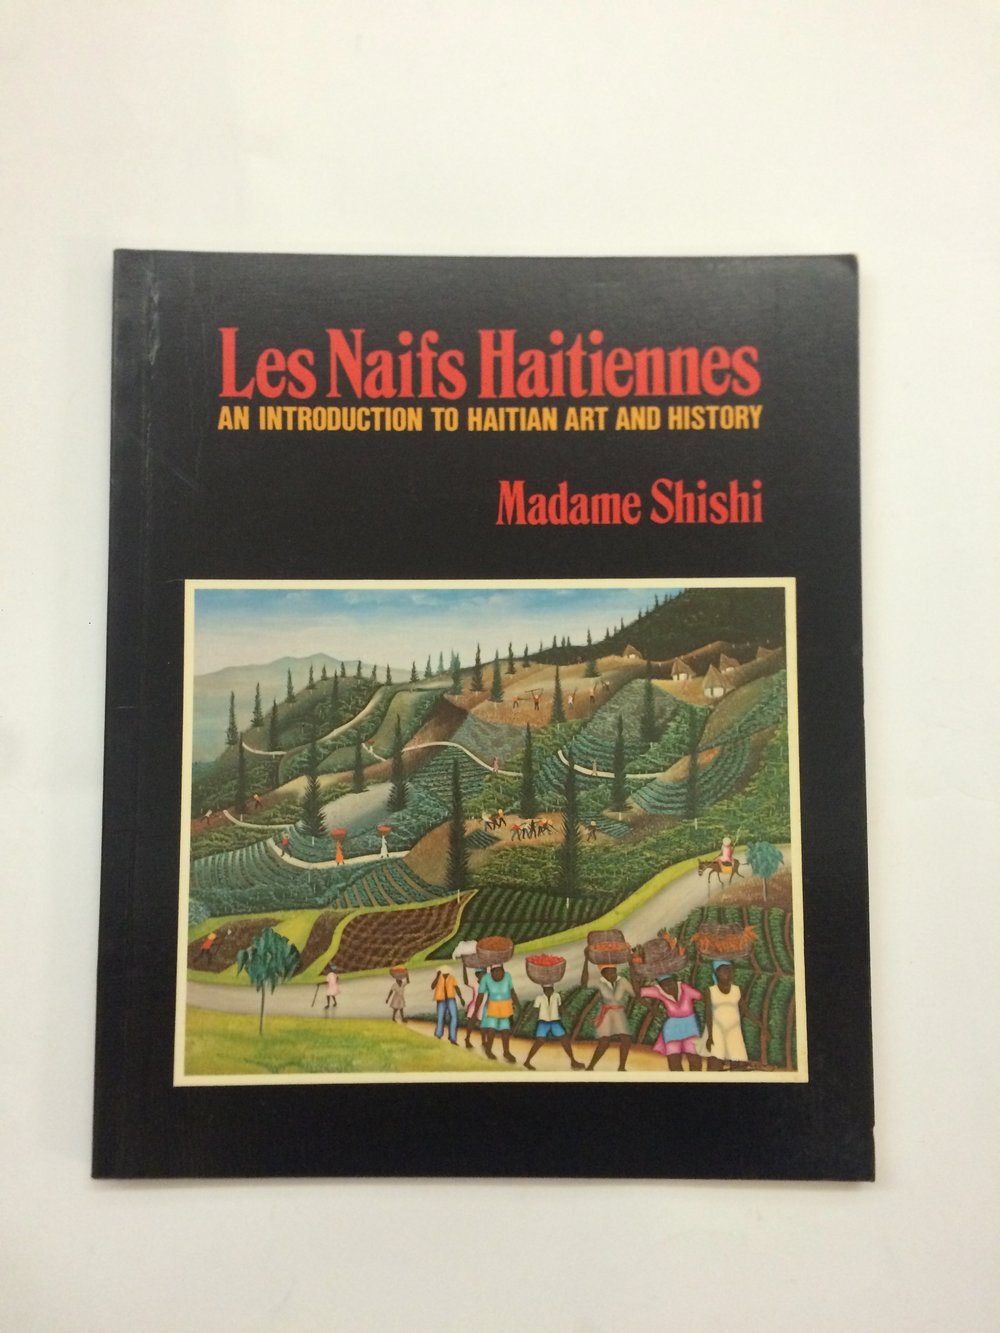 'Les Natifs Haitiennes': An Introduction to Haitian Art and History- Madame Shishi